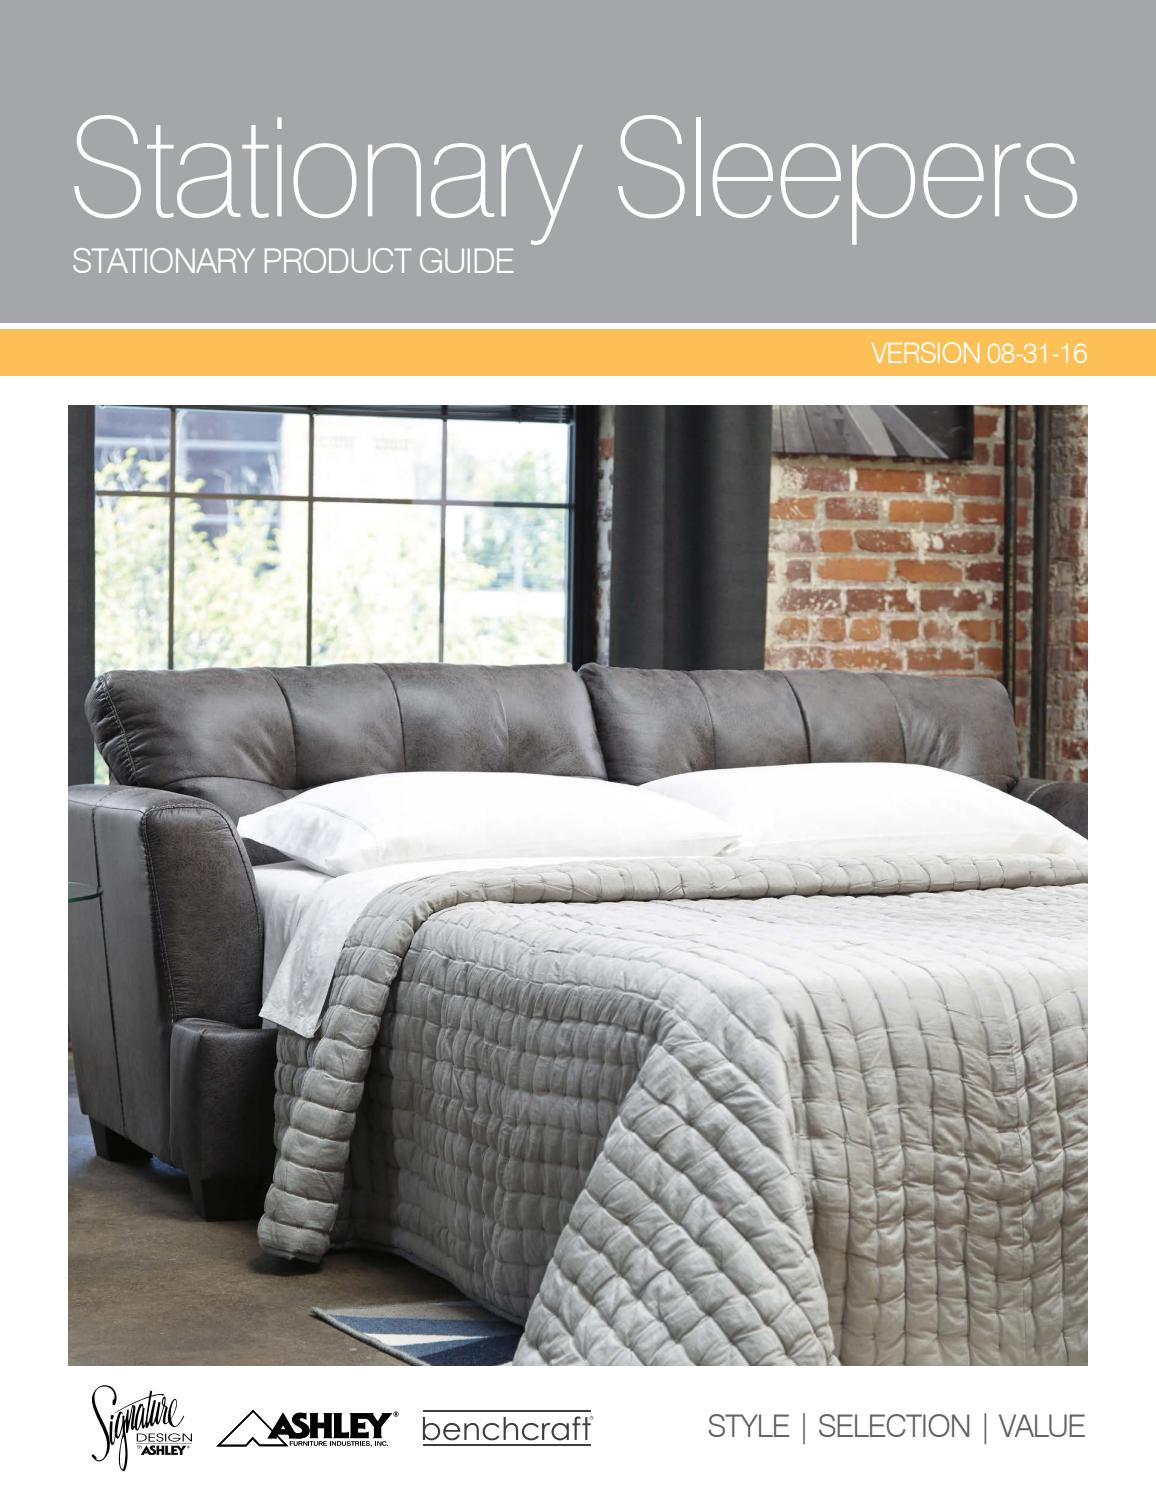 Cool Sleepers Benchcraft Signature By Yoamolosmuebles Issuu Dailytribune Chair Design For Home Dailytribuneorg